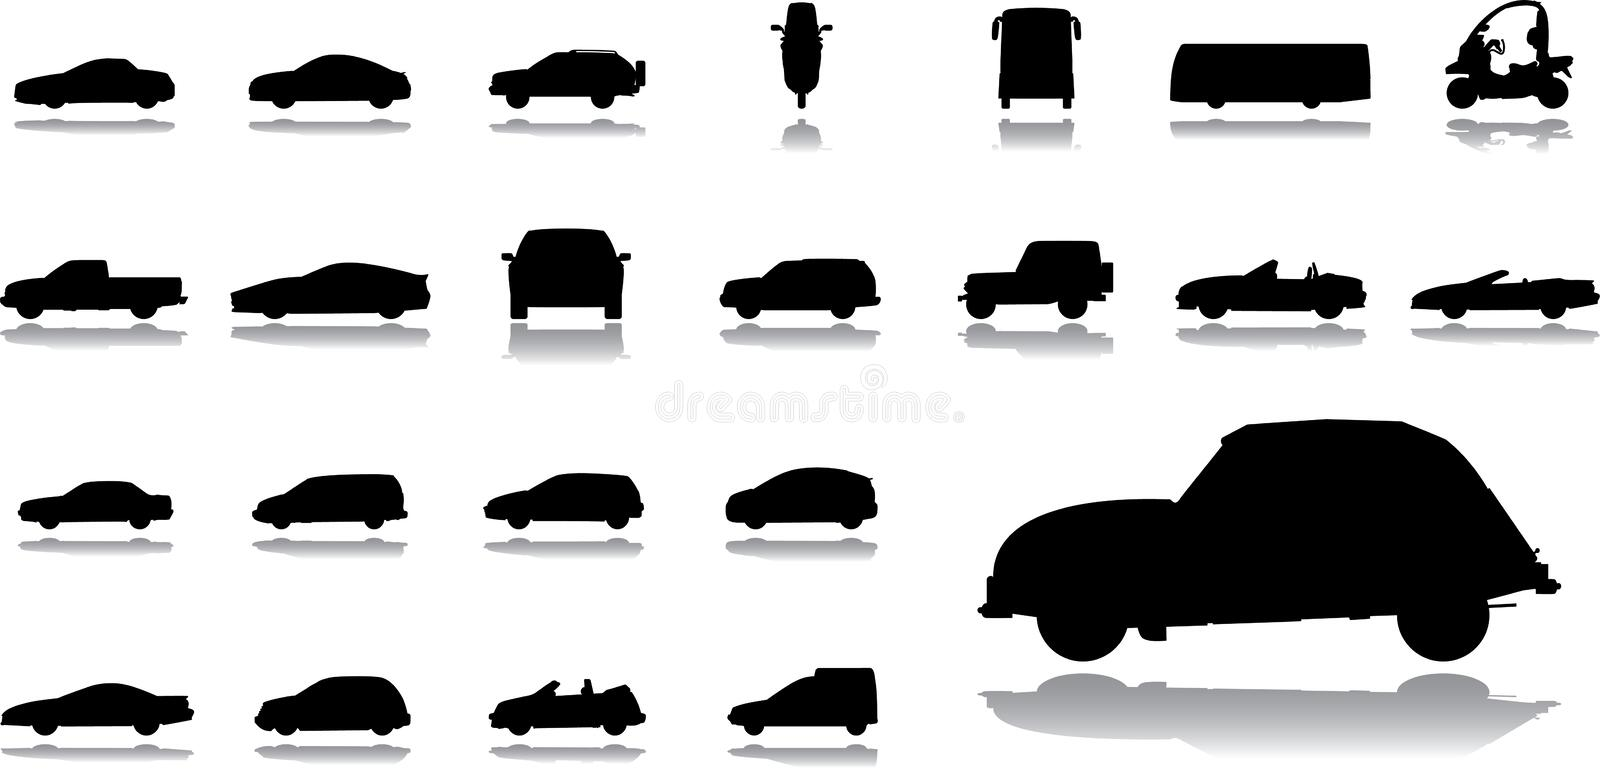 Big set icons - 14. Cars vector illustration